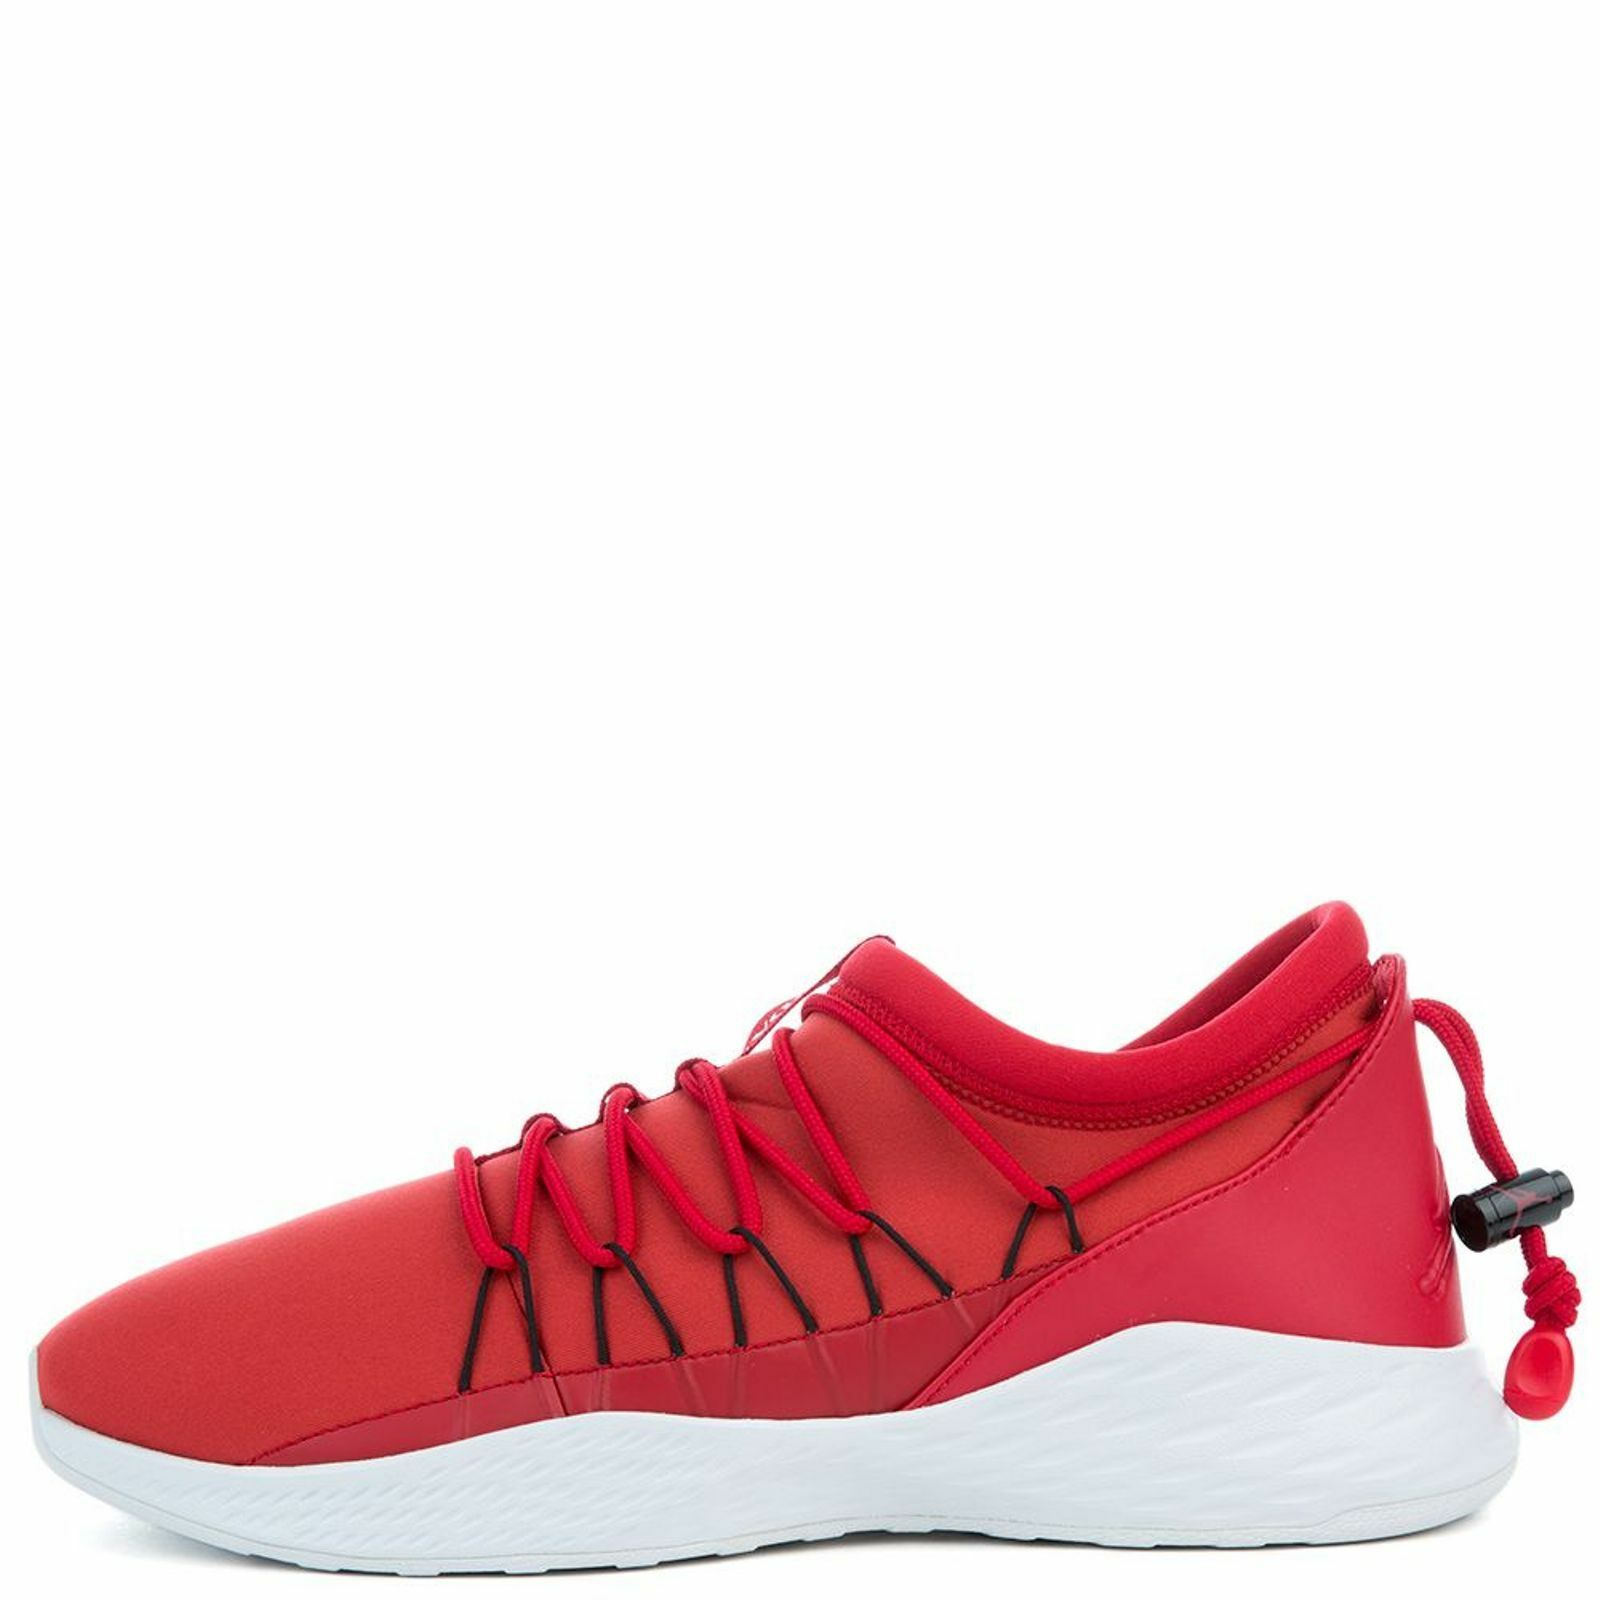 NIKE AIR JORDAN FORMULA 23 TOGGLE RED RED RED zapatillas hombre zapatos training max sconto 1 fee9d3